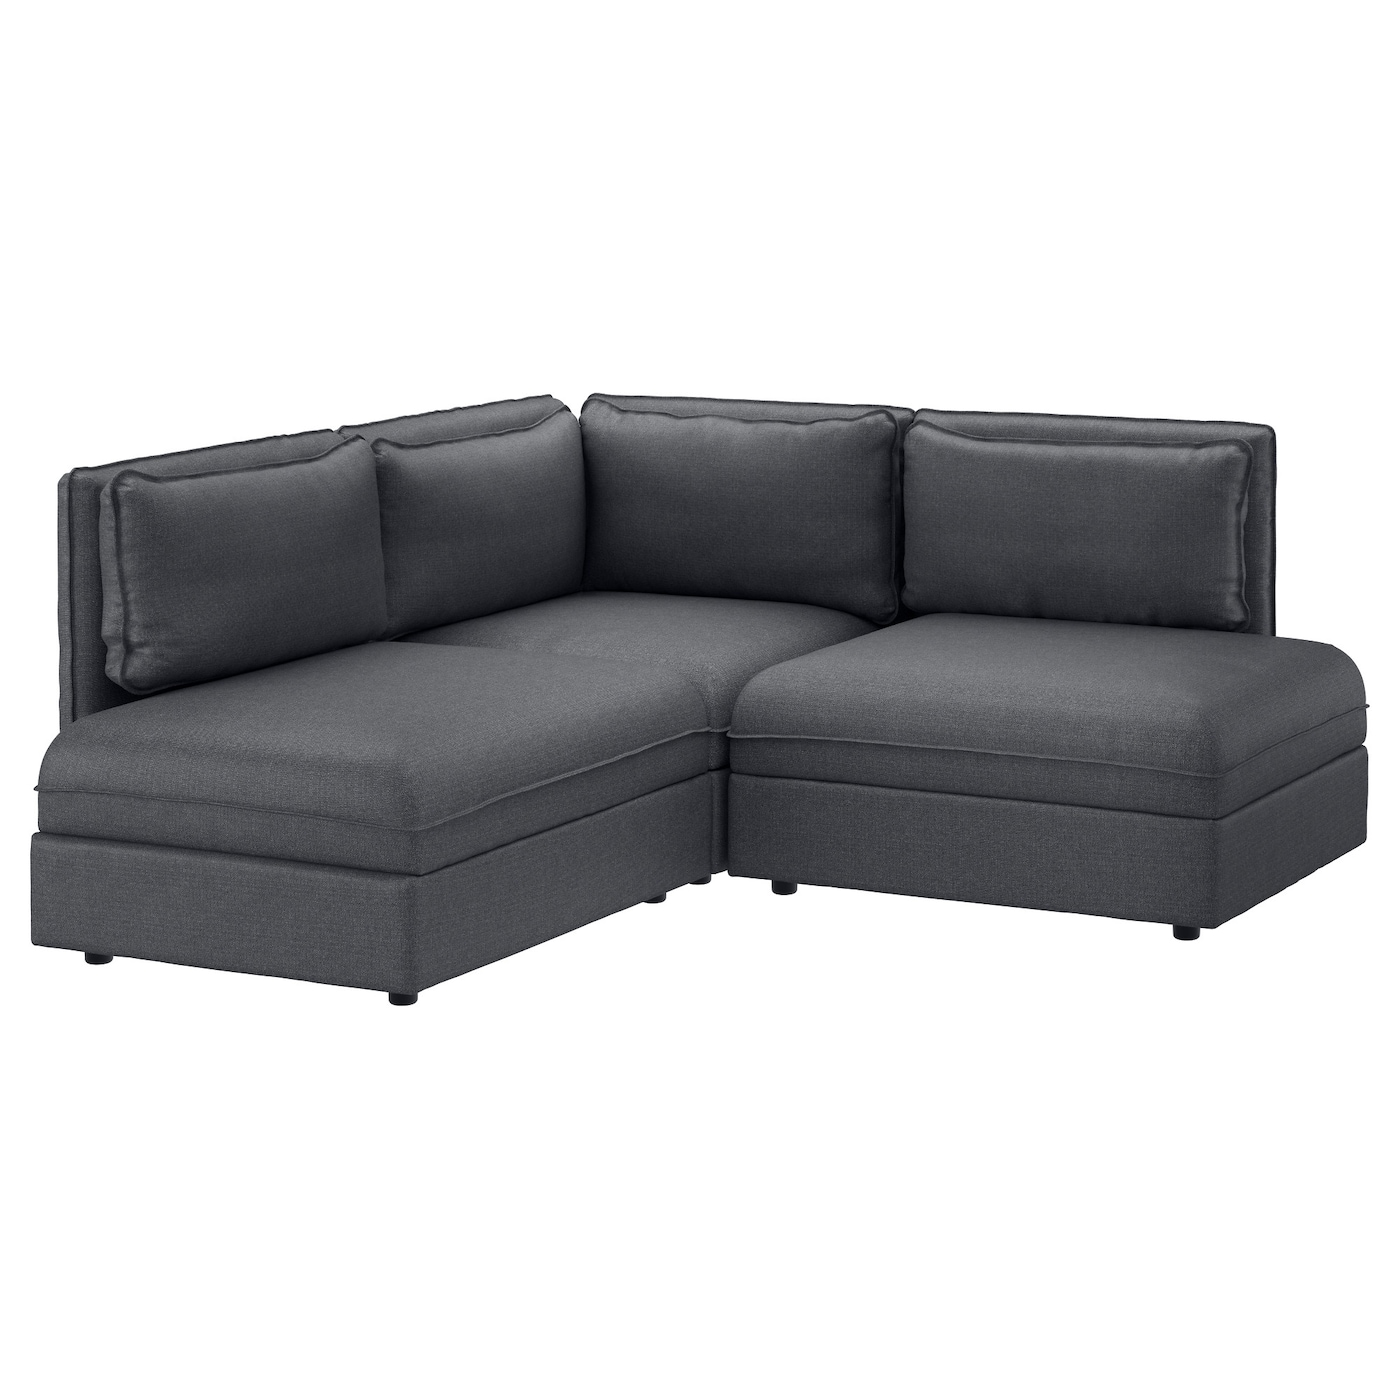 Vallentuna 3 seat corner sofa hillared dark grey ikea for Ecksofa 300 x 200